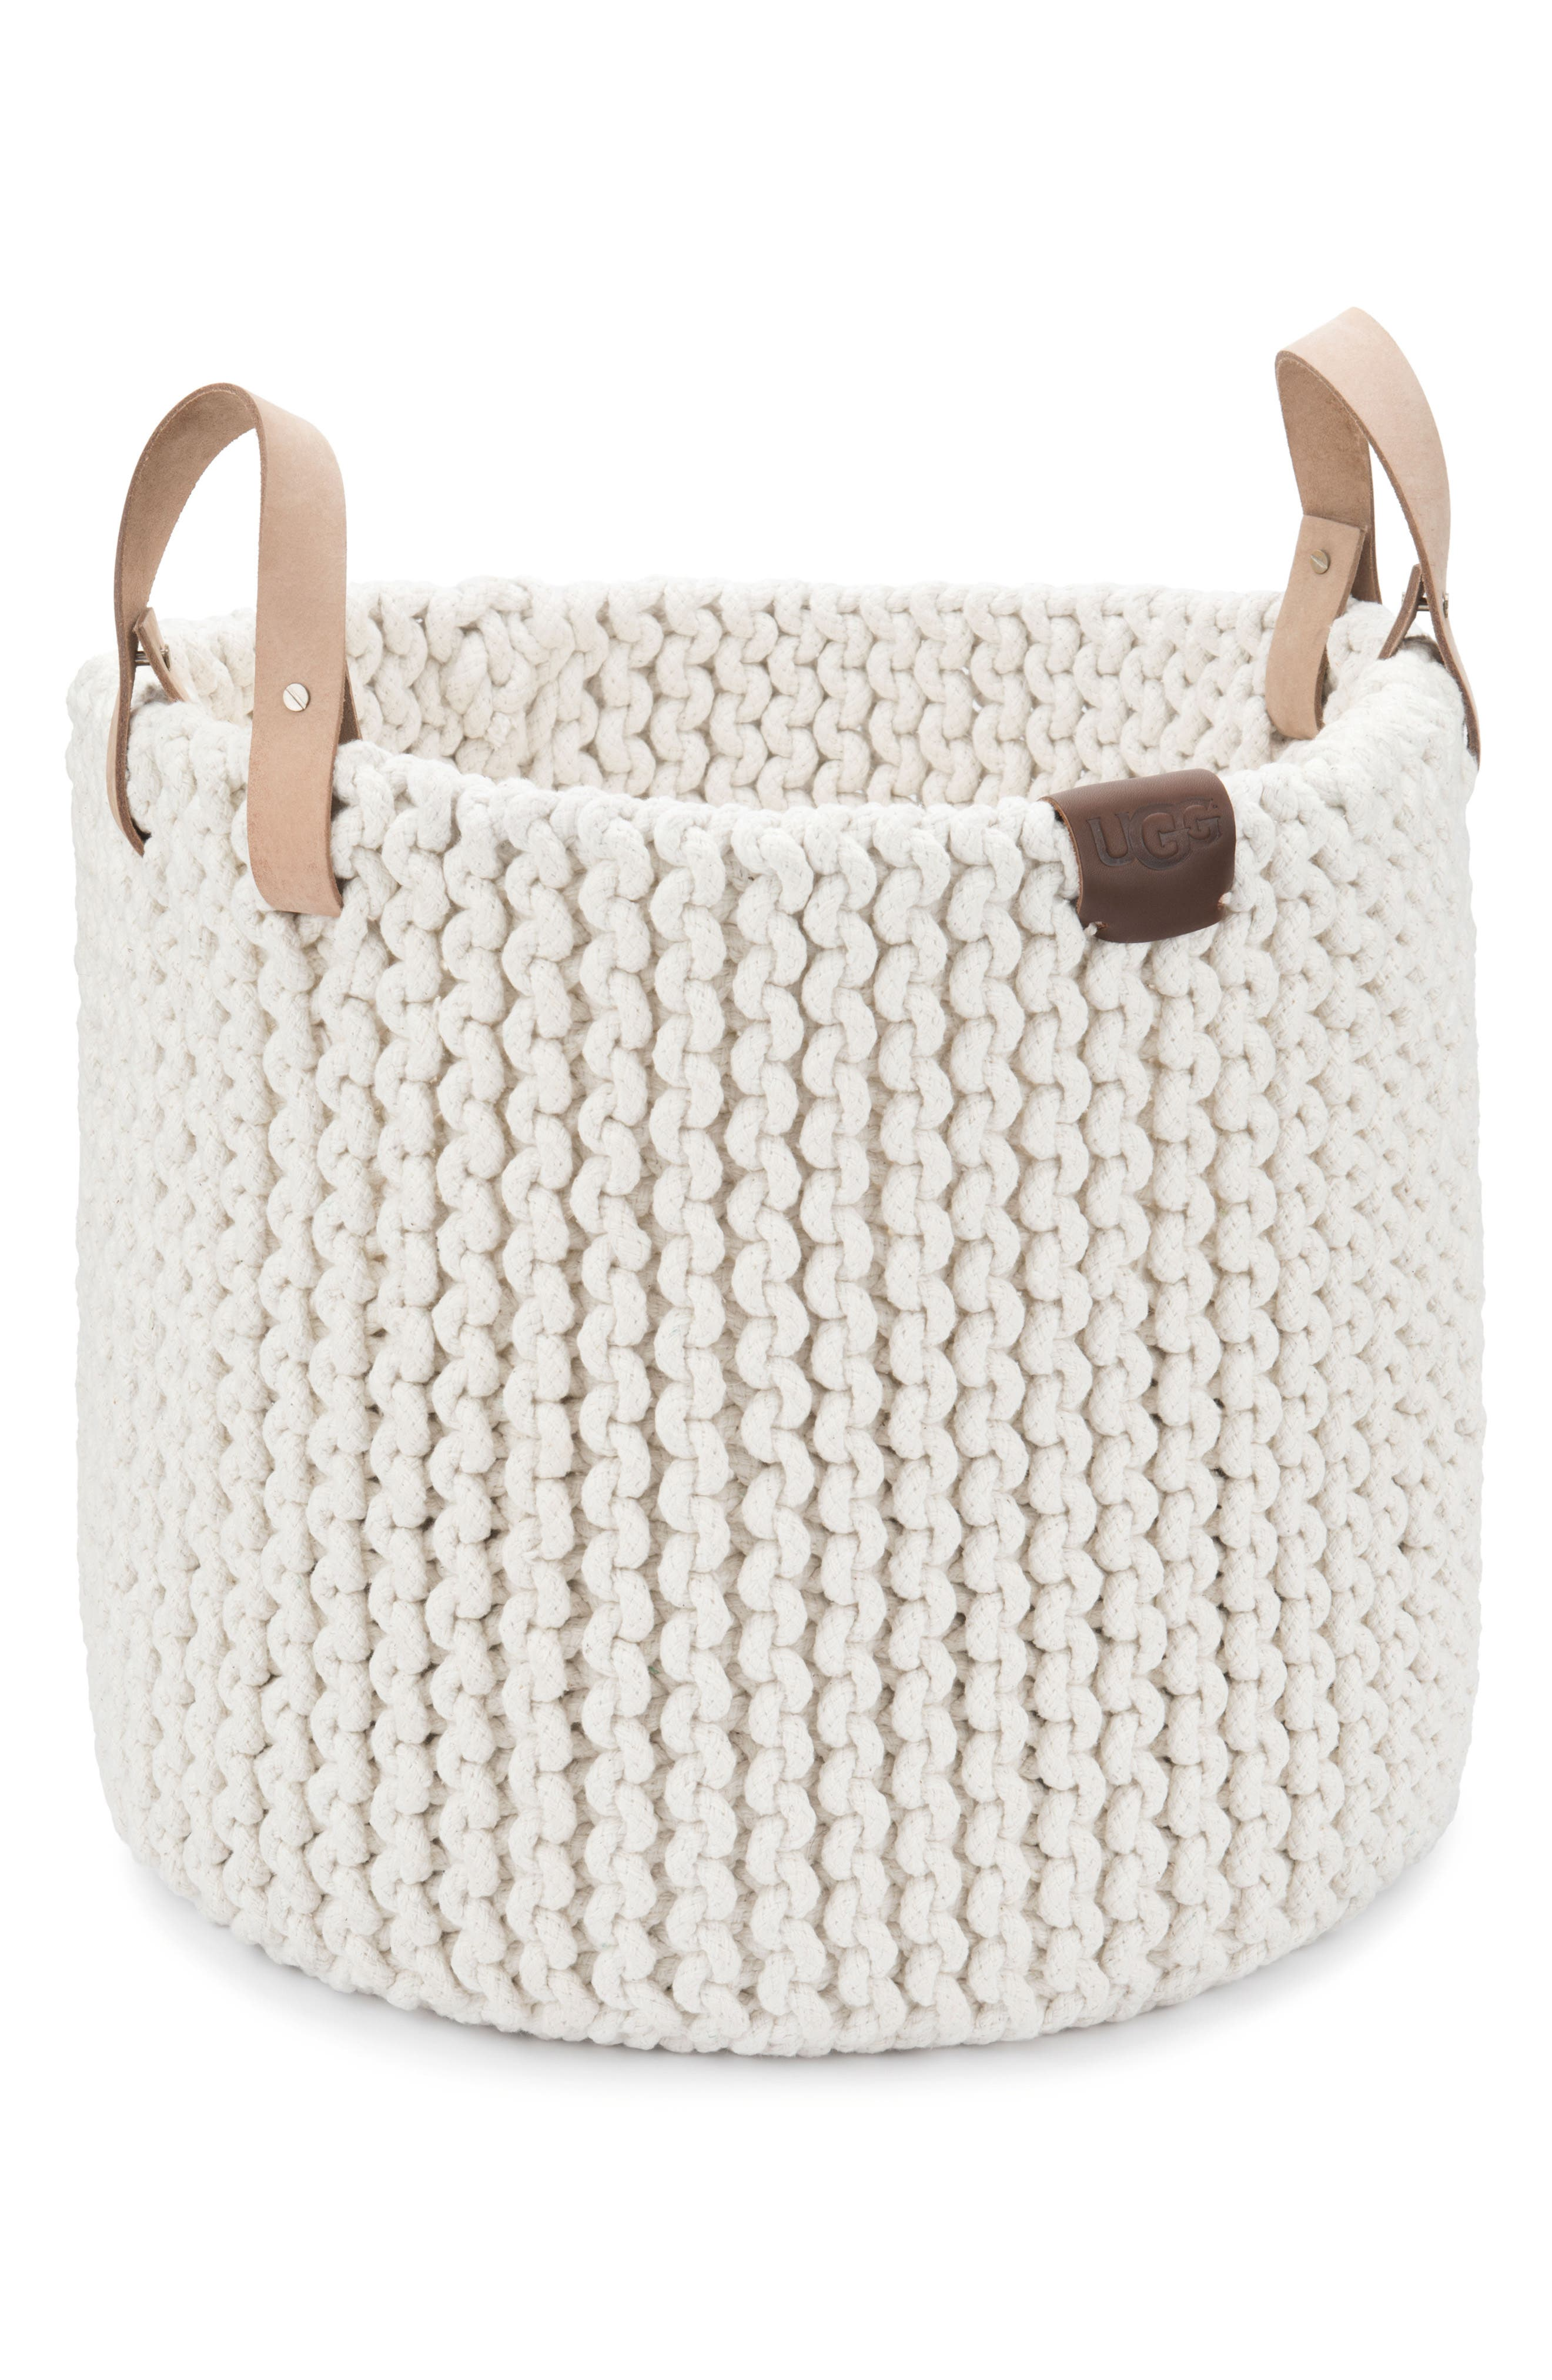 Tulum Rope Basket,                         Main,                         color, NATURAL